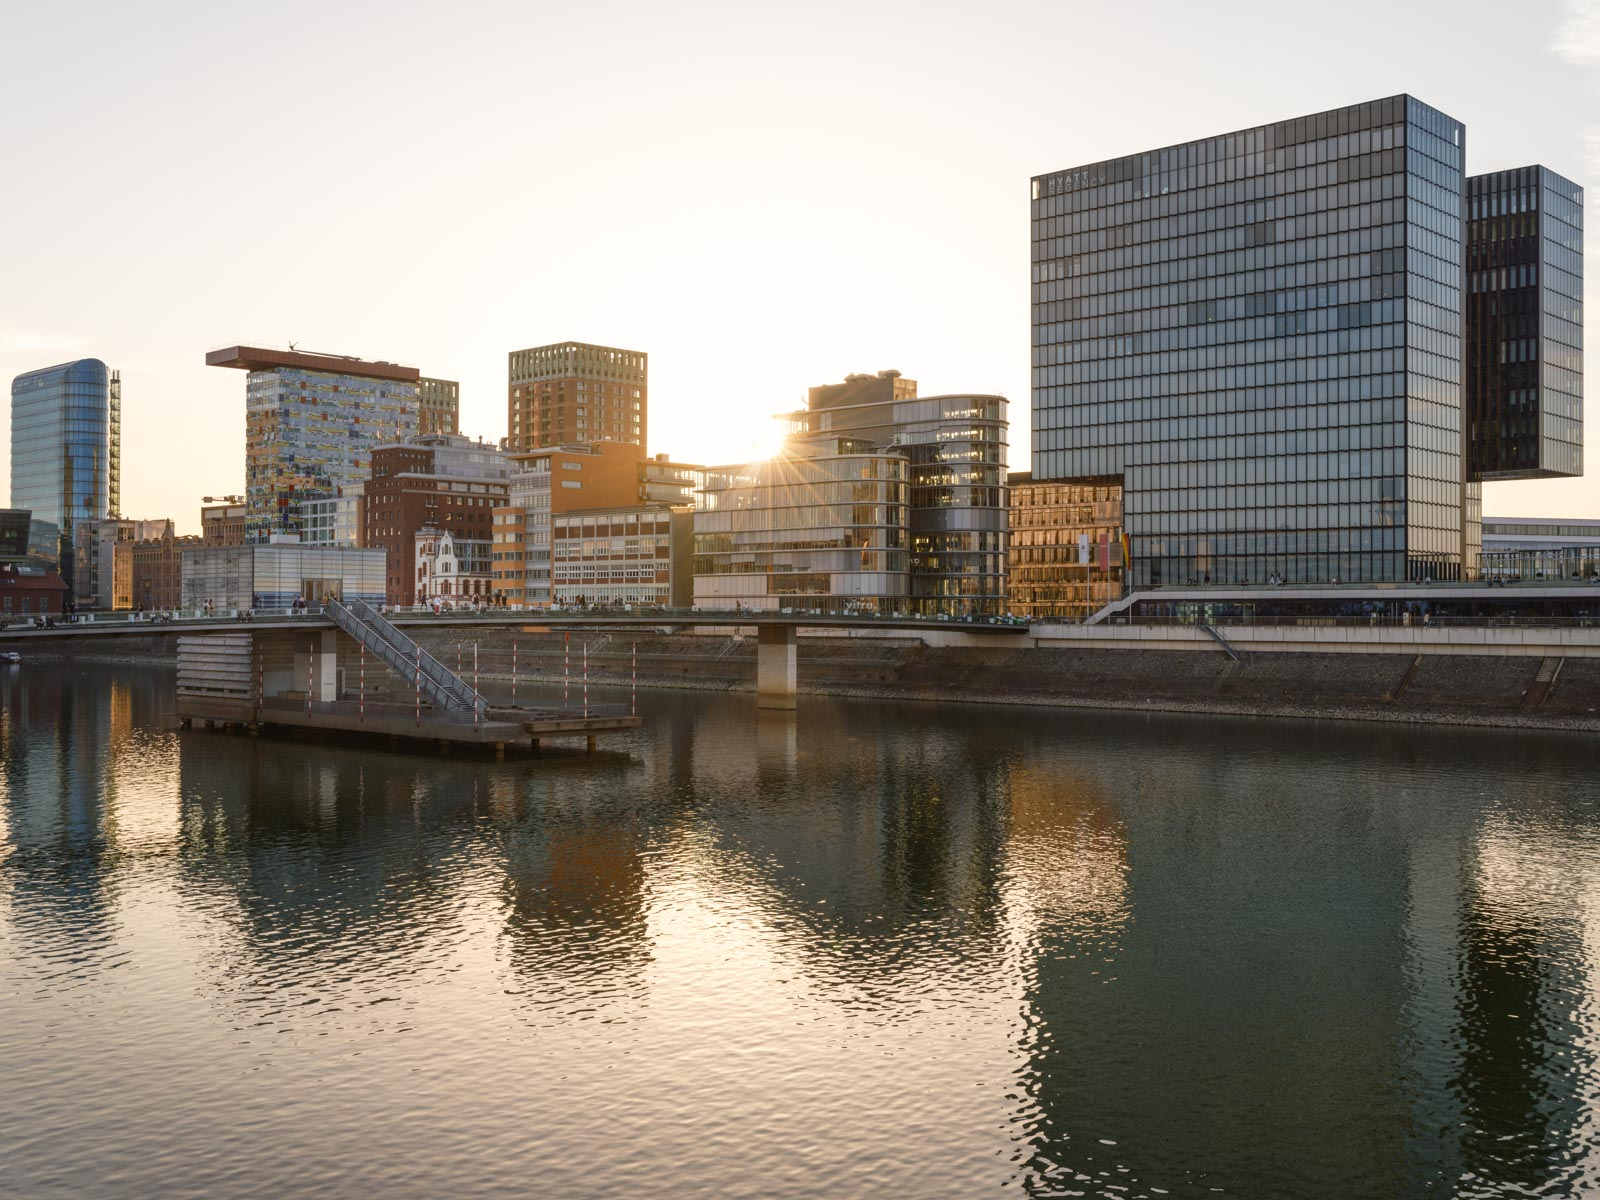 Late afternoon in the 'Medienhafen' (Media Harbour) in Düsseldorf on the Rhine in March 2021 (Germany).